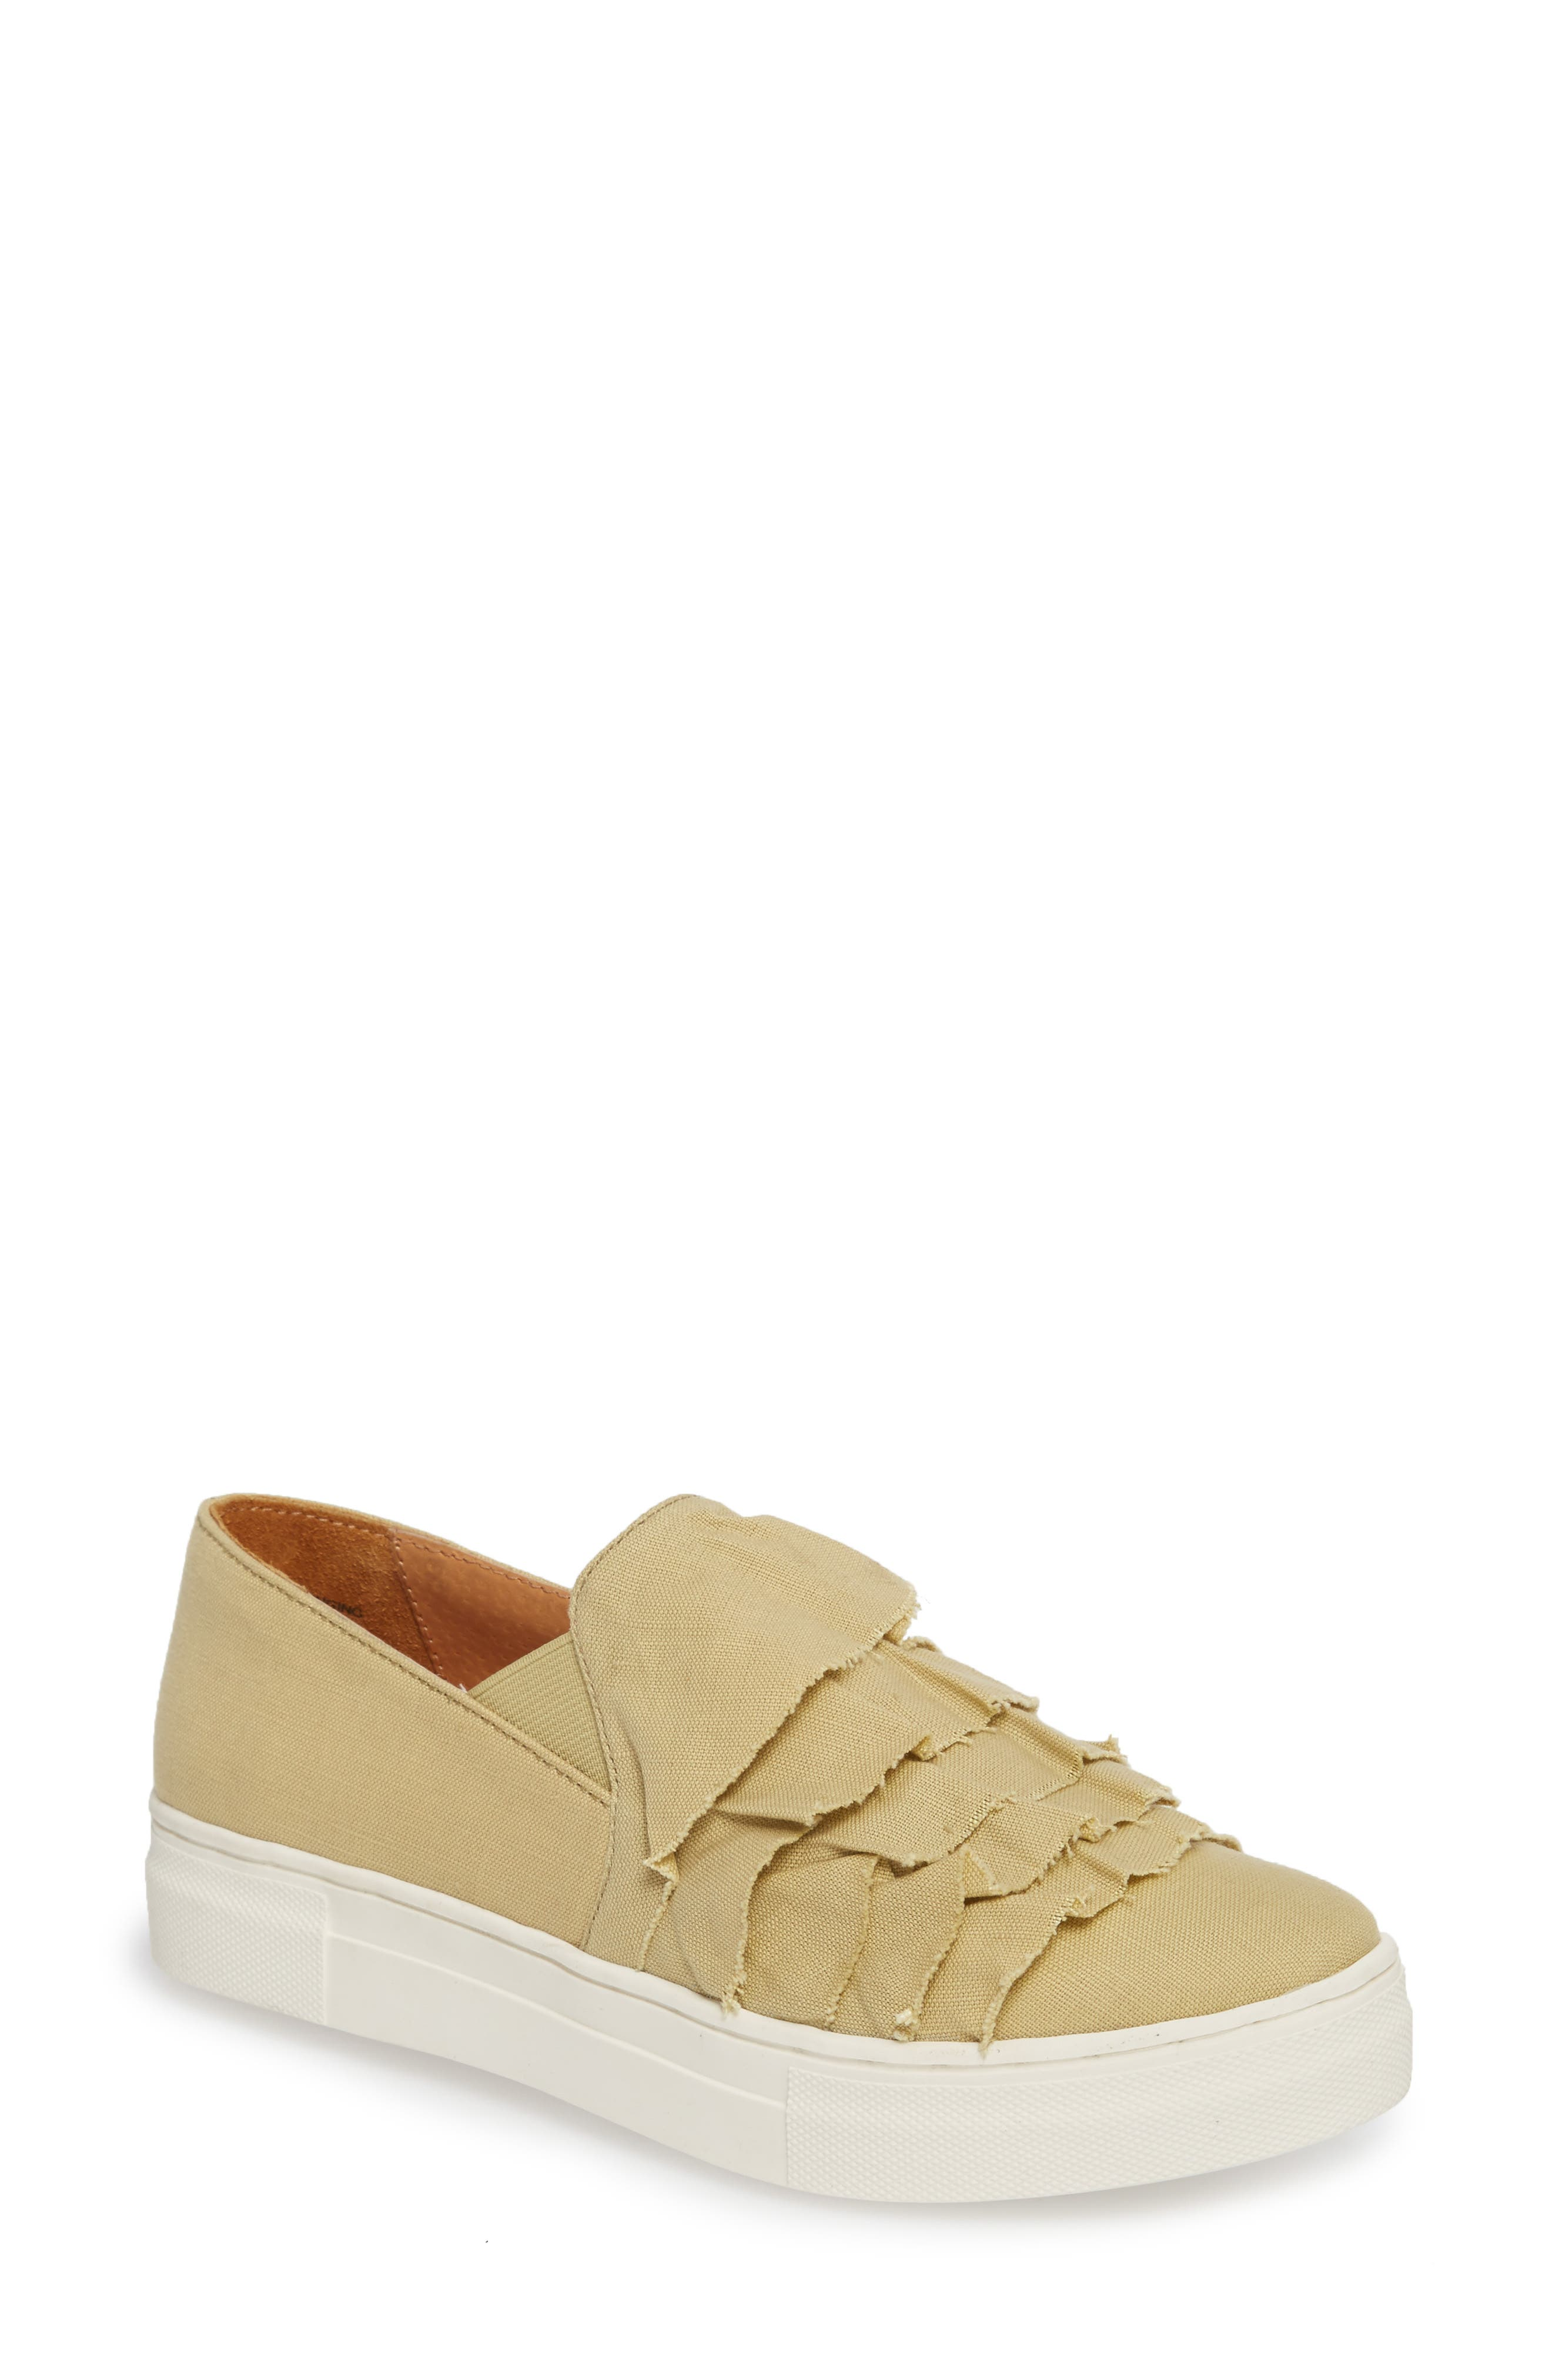 Quake II Slip-On Sneaker,                         Main,                         color, Natural Frayed Fabric